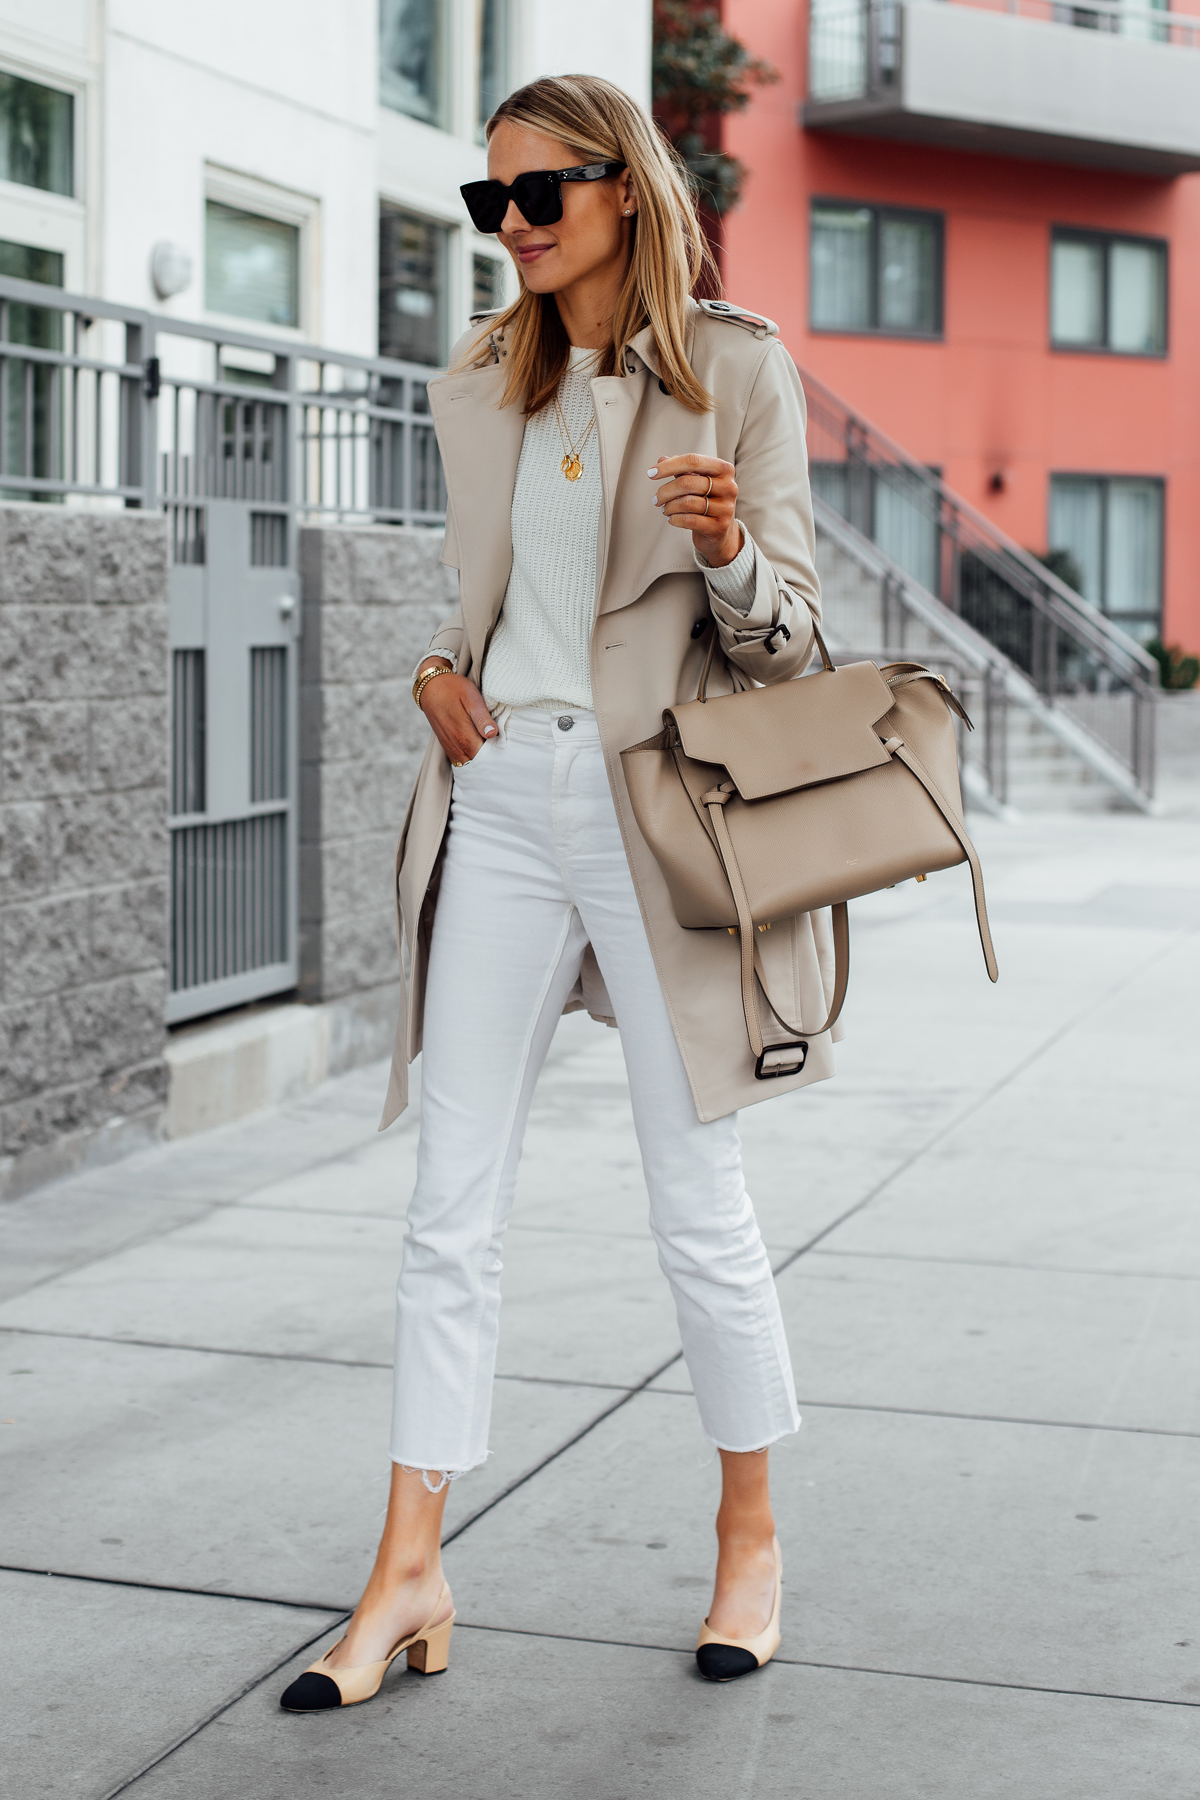 Blonde Woman Wearing Wearing Club Monaco Trench Coat White Sweater Everlane White Cropped Jeans Chanel Slingback Shoes Celine Mini Belt Bag Fashion Jackson San Diego Fashion Blogger Street Style